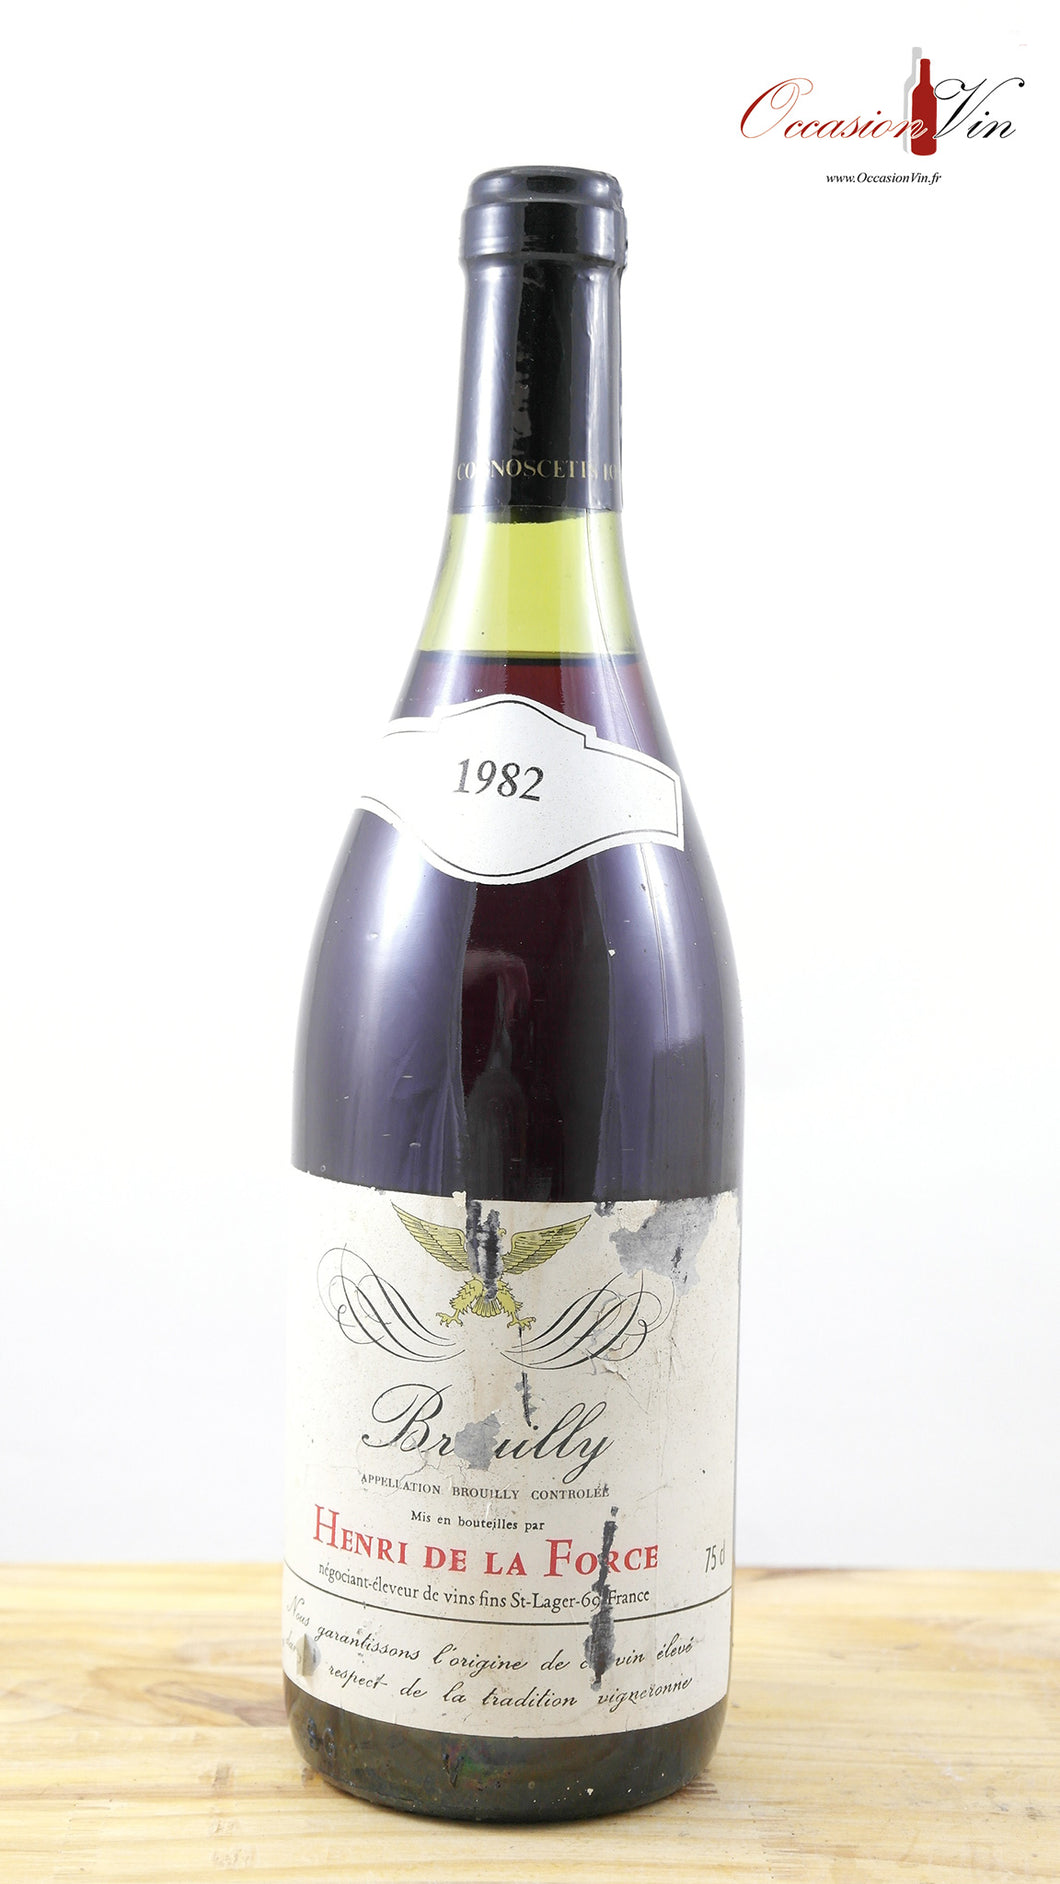 Brouilly Henry de la Force NB Vin 1982